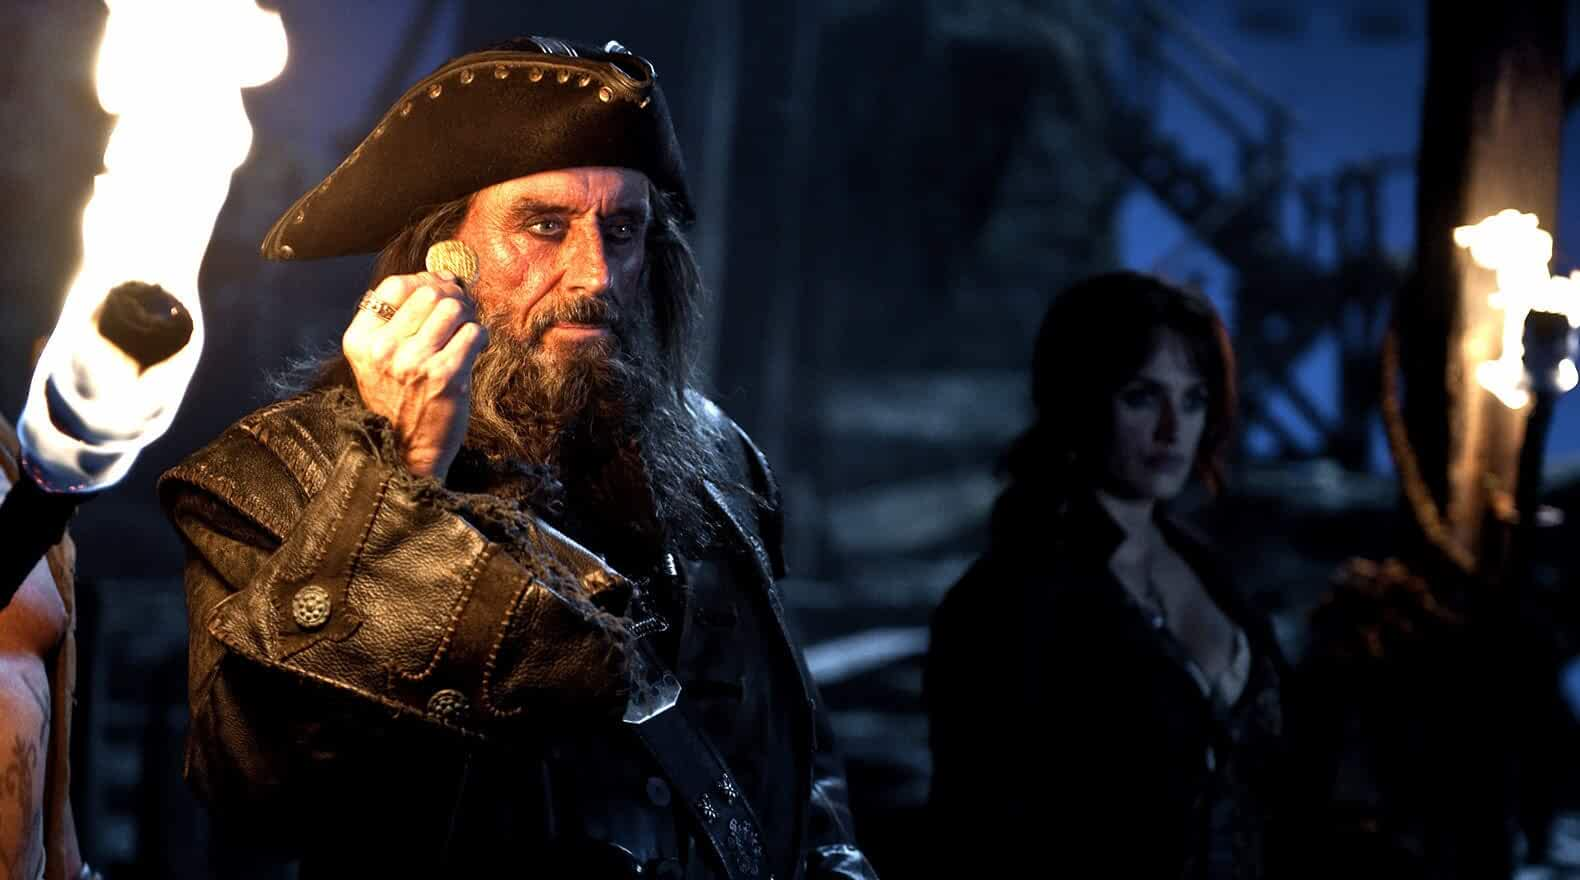 Penélope Cruz and Ian McShane in Pirates of the Caribbean: On Stranger Tides (2011)